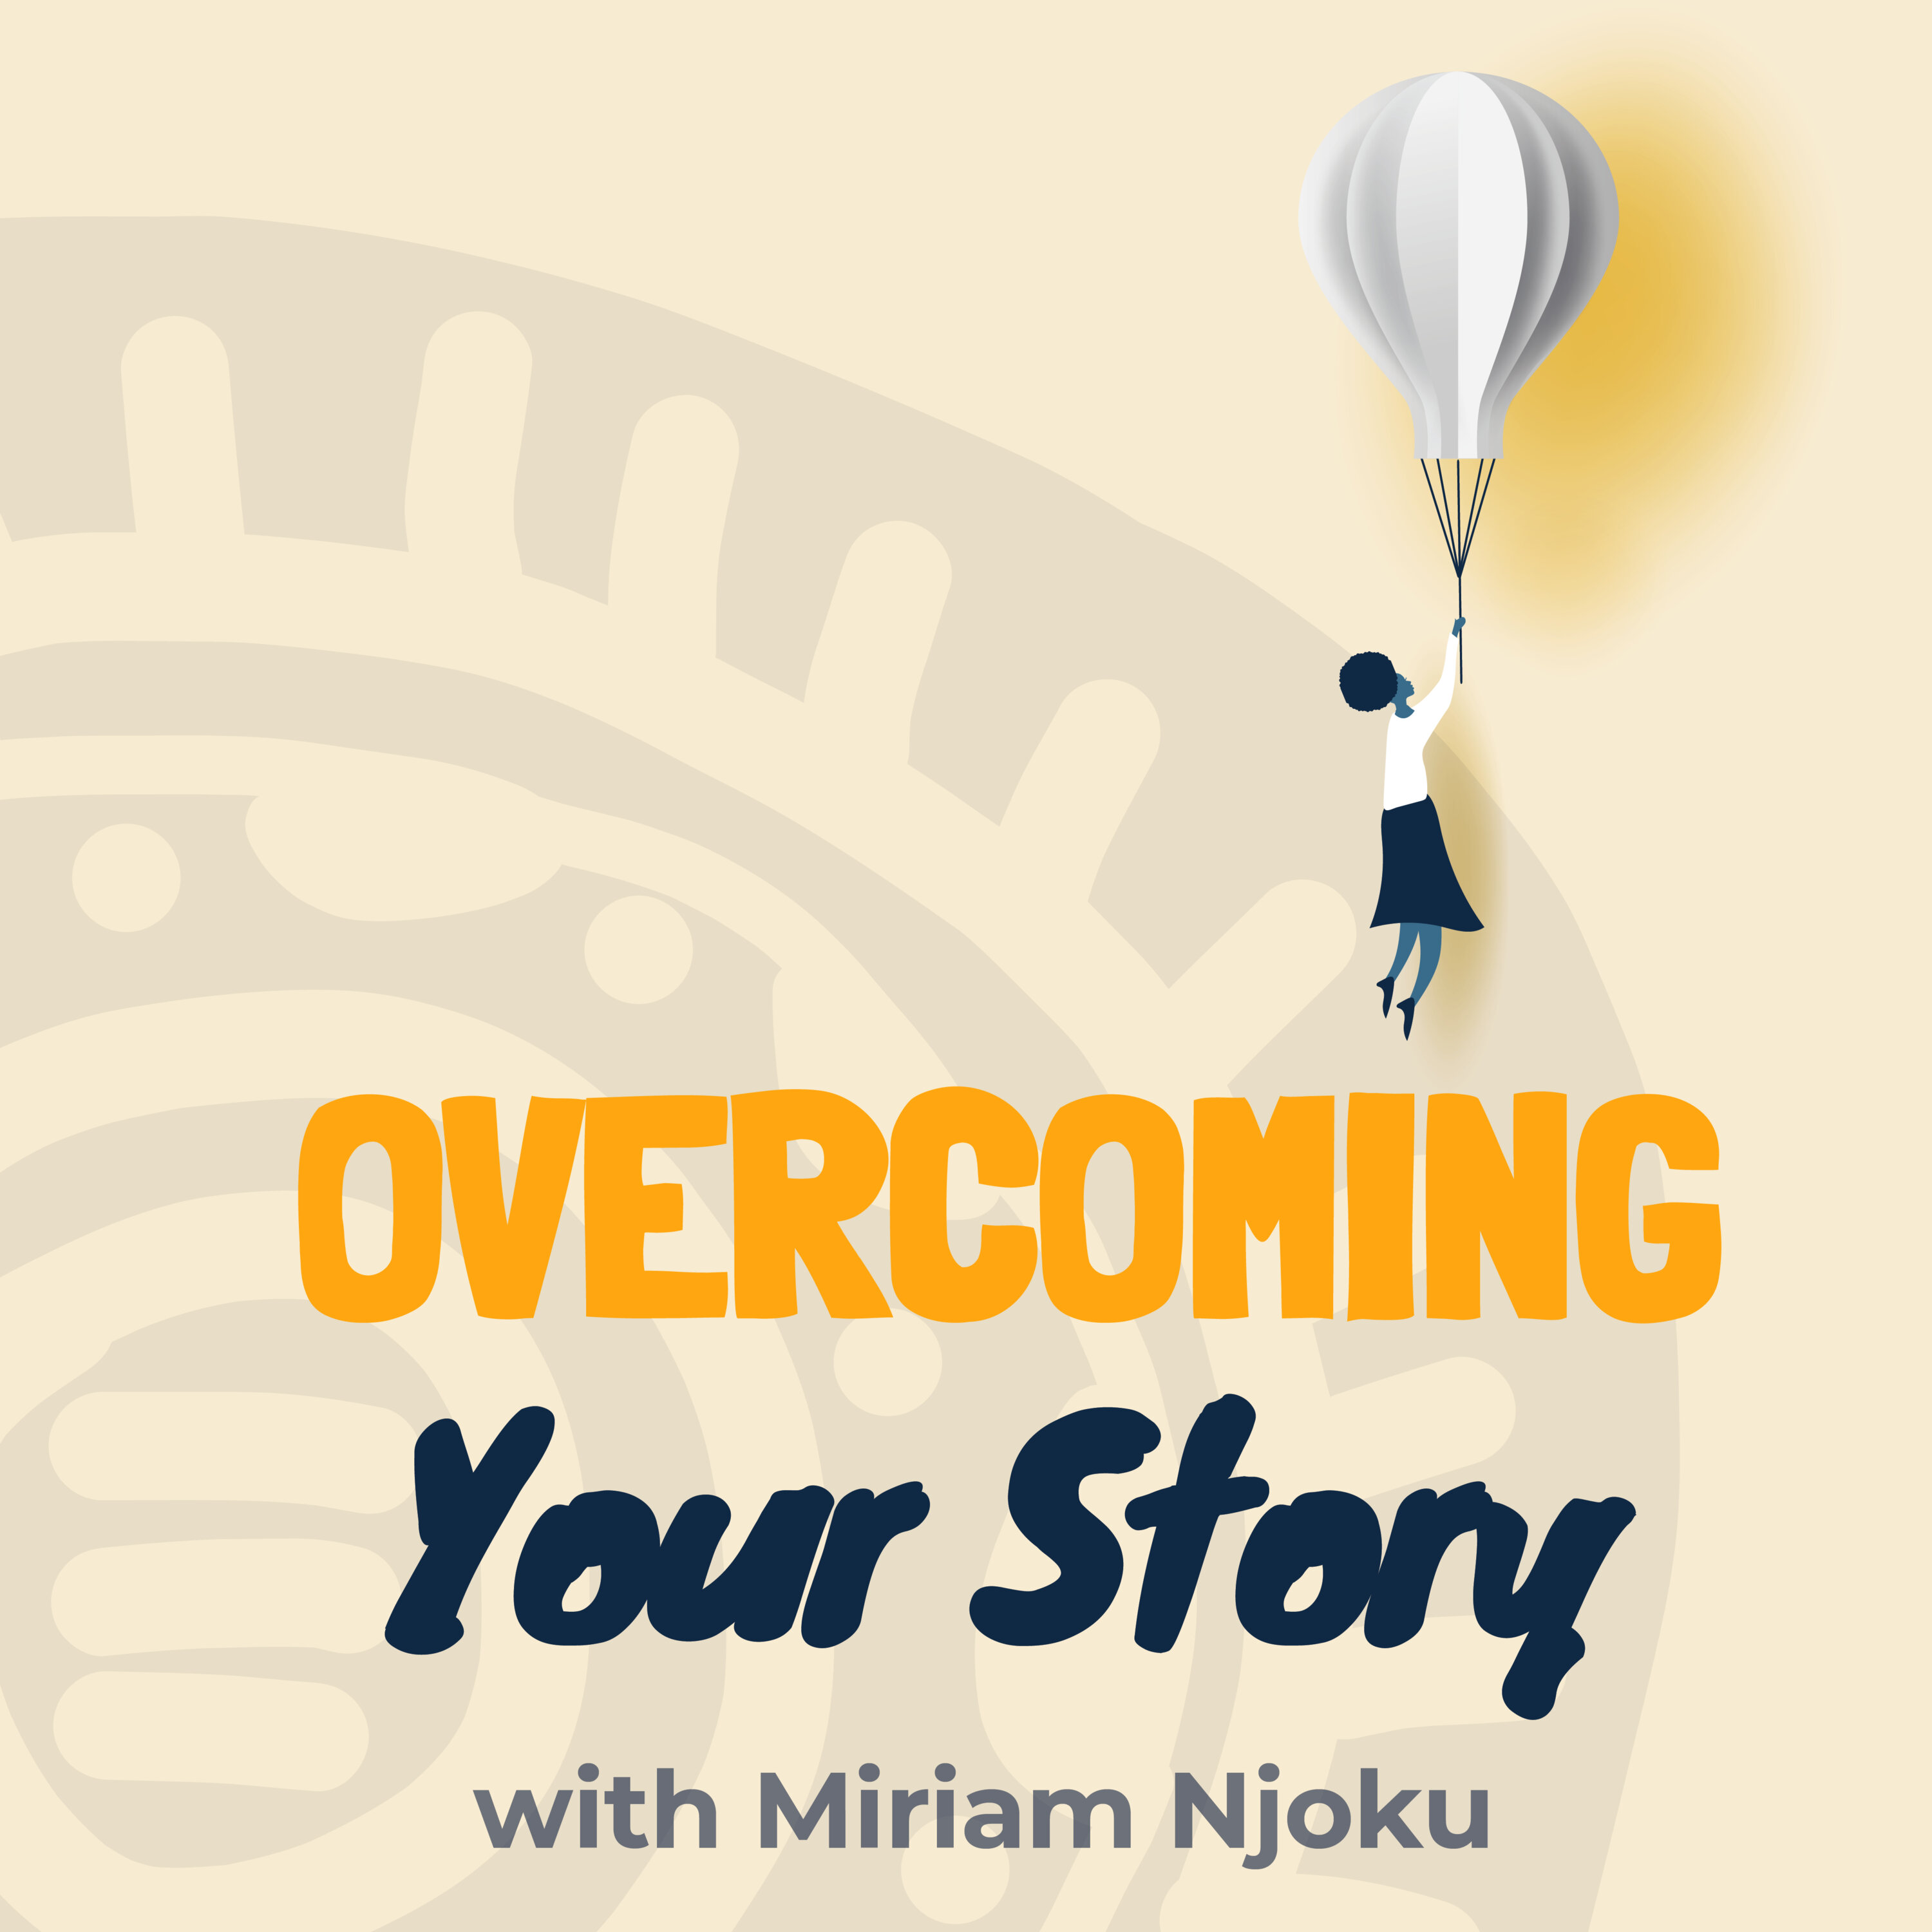 Artwork for podcast Overcoming Your Story Podcast